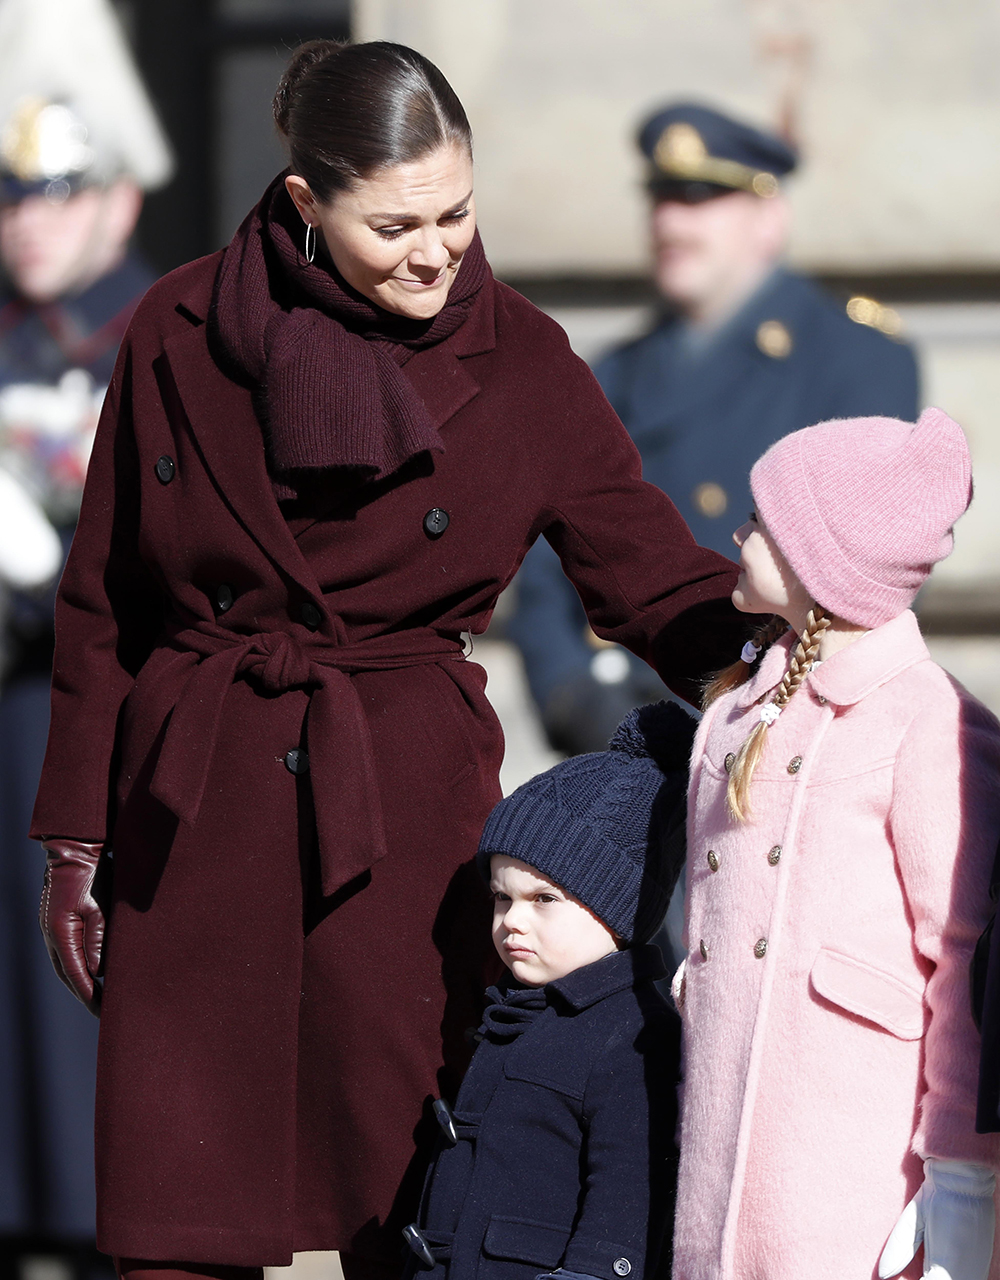 Sweden's Prince Oscar gets grumpy on mom Princess Victoria's name day, steals the show